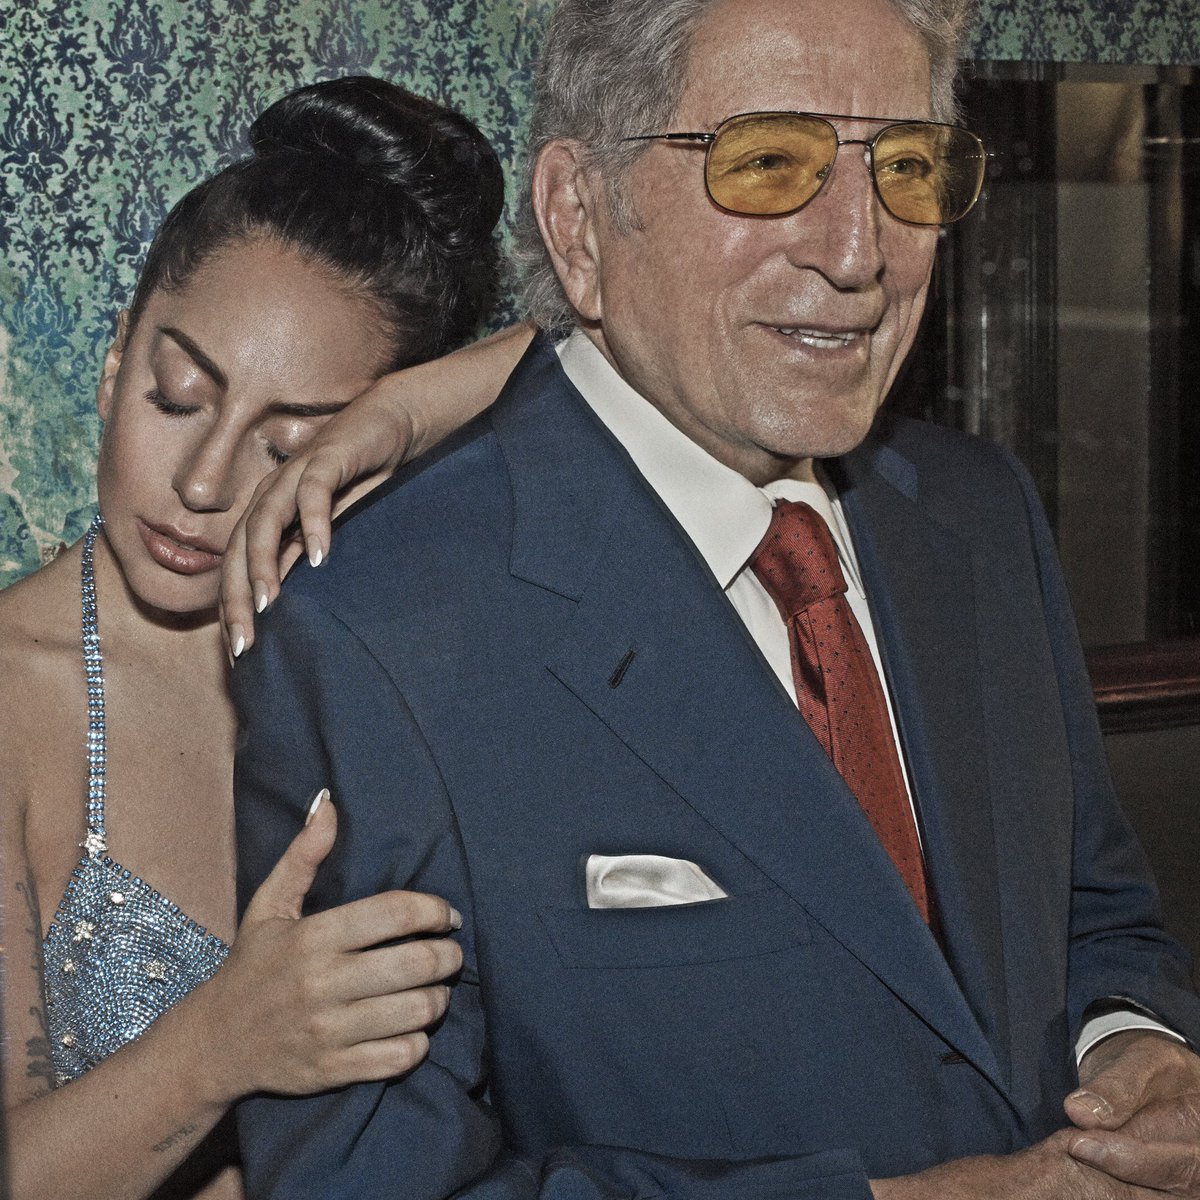 Happy Birthday @itstonybennett! You hold such a special place in my heart. Whenever I think of you I always Smile, just like Charlie Chaplin wrote. You're beautiful inside and out and the whole world loves you. I celebrate you today from home. But I wish we were Cheek to Cheek 😘 https://t.co/U3KMyRzmK0